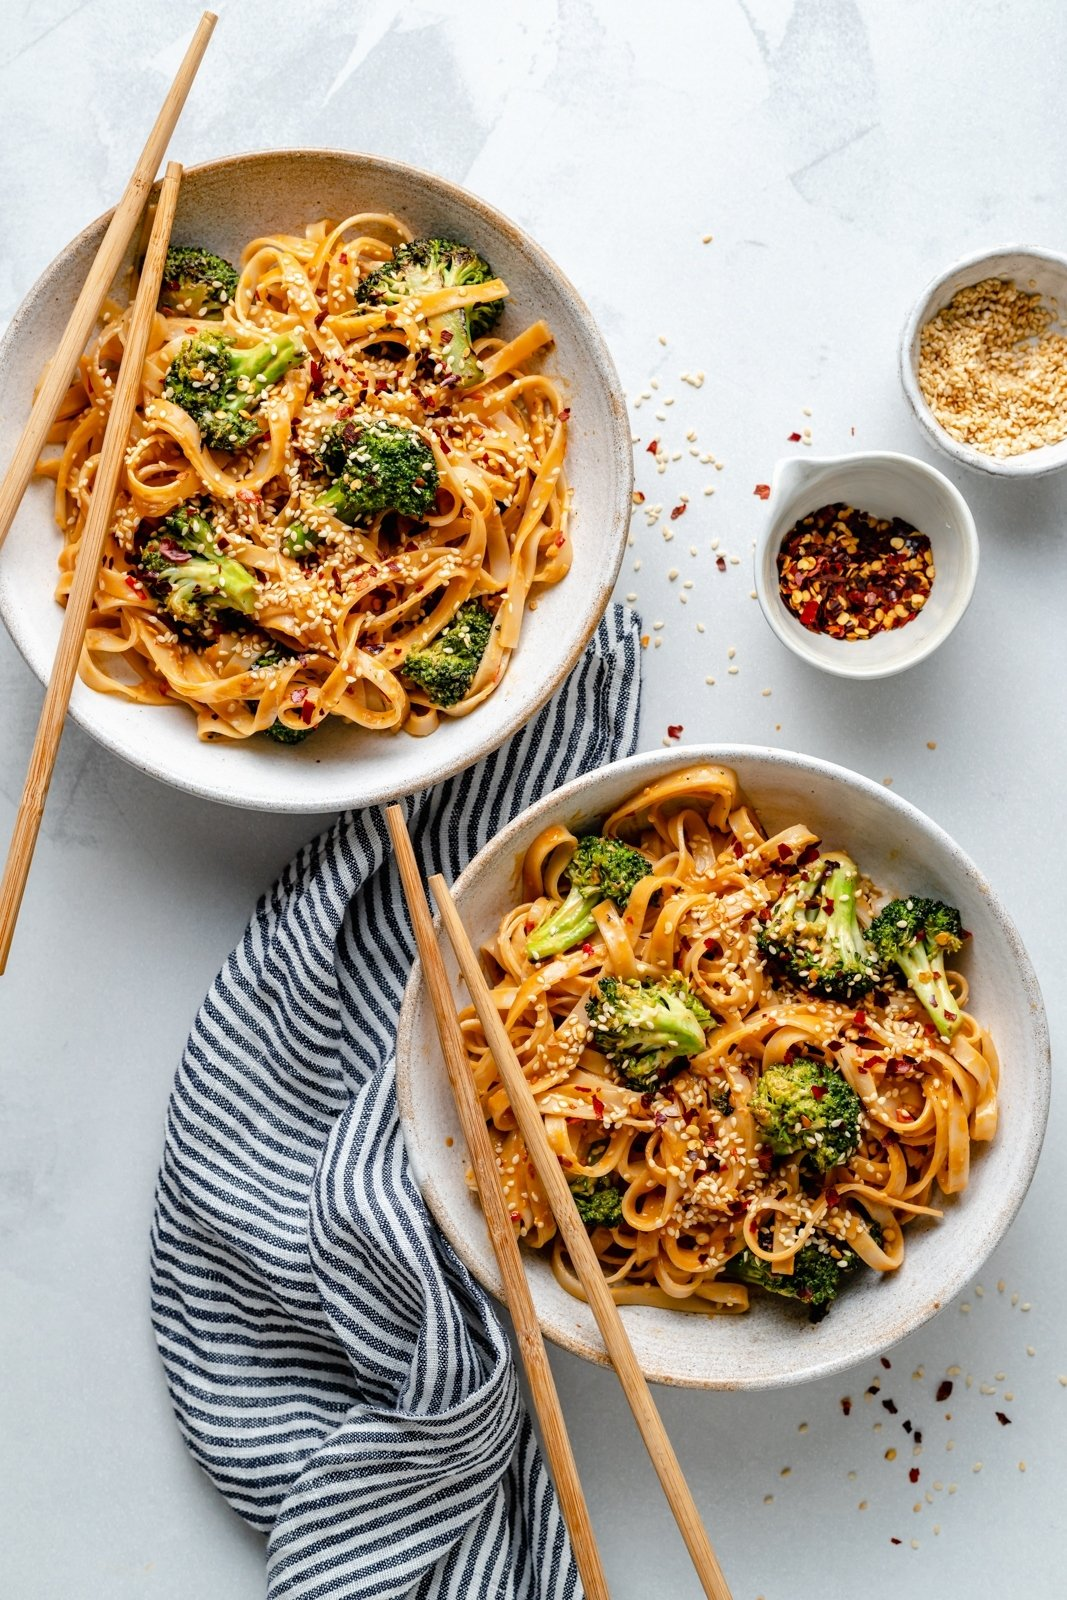 sesame tahini noodles with broccoli in two bowls